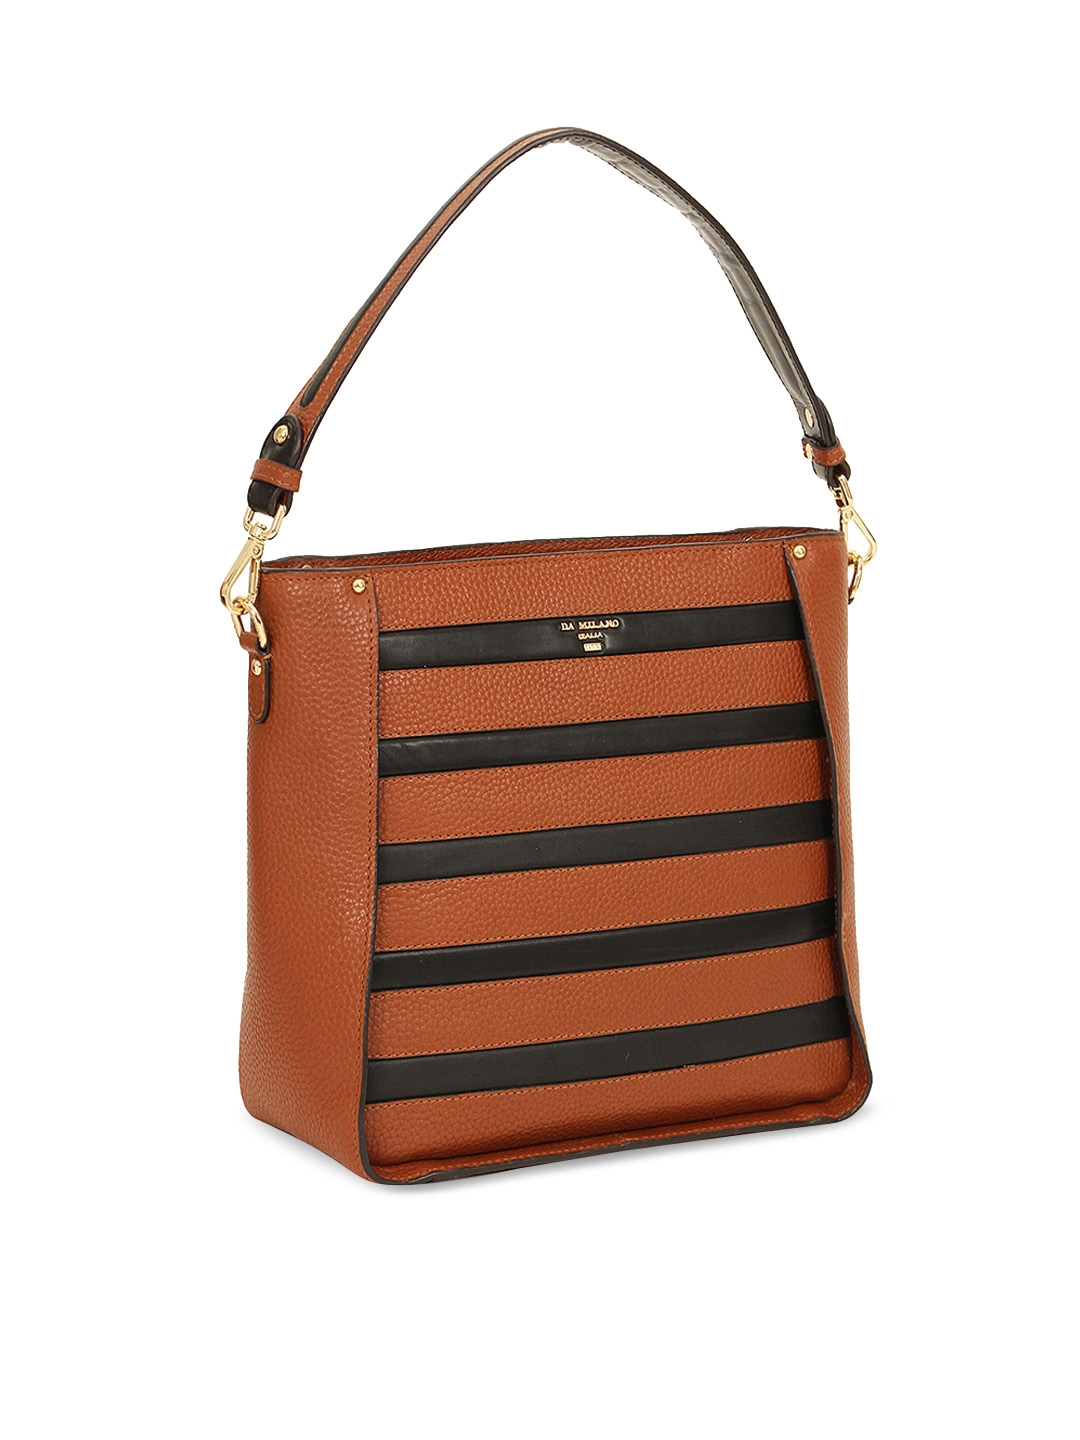 43c939f1d2 Buy Da Milano Brown & Black Striped Leather Shoulder Bag - Handbags ...